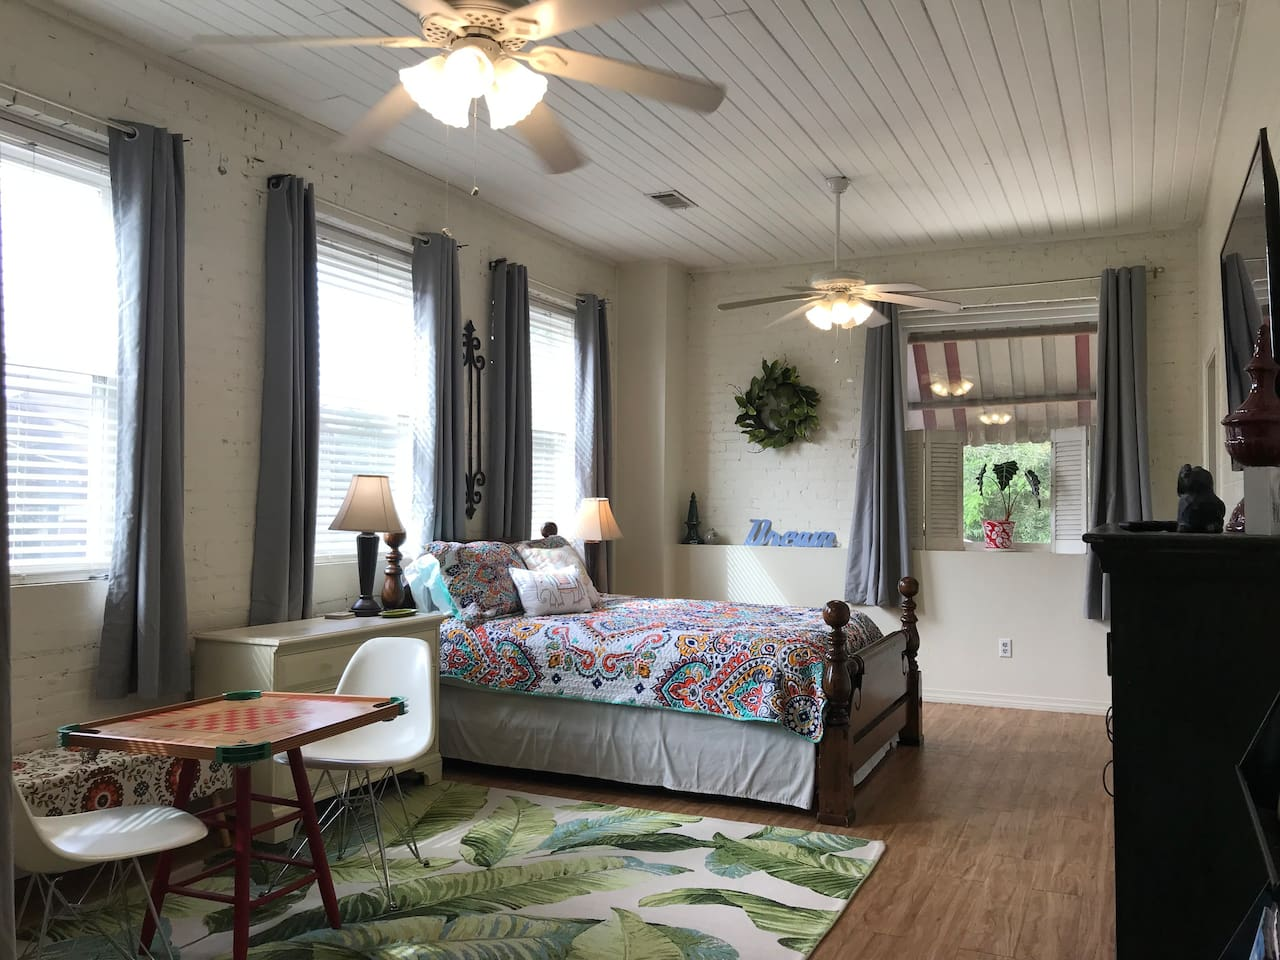 The master suite features a new Queen bed with euro top mattress.  The space is light filled and shows a lovely second story view of the town and live oak trees.  When you are ready to settle, pull the black out curtains close) now in every bedroom)